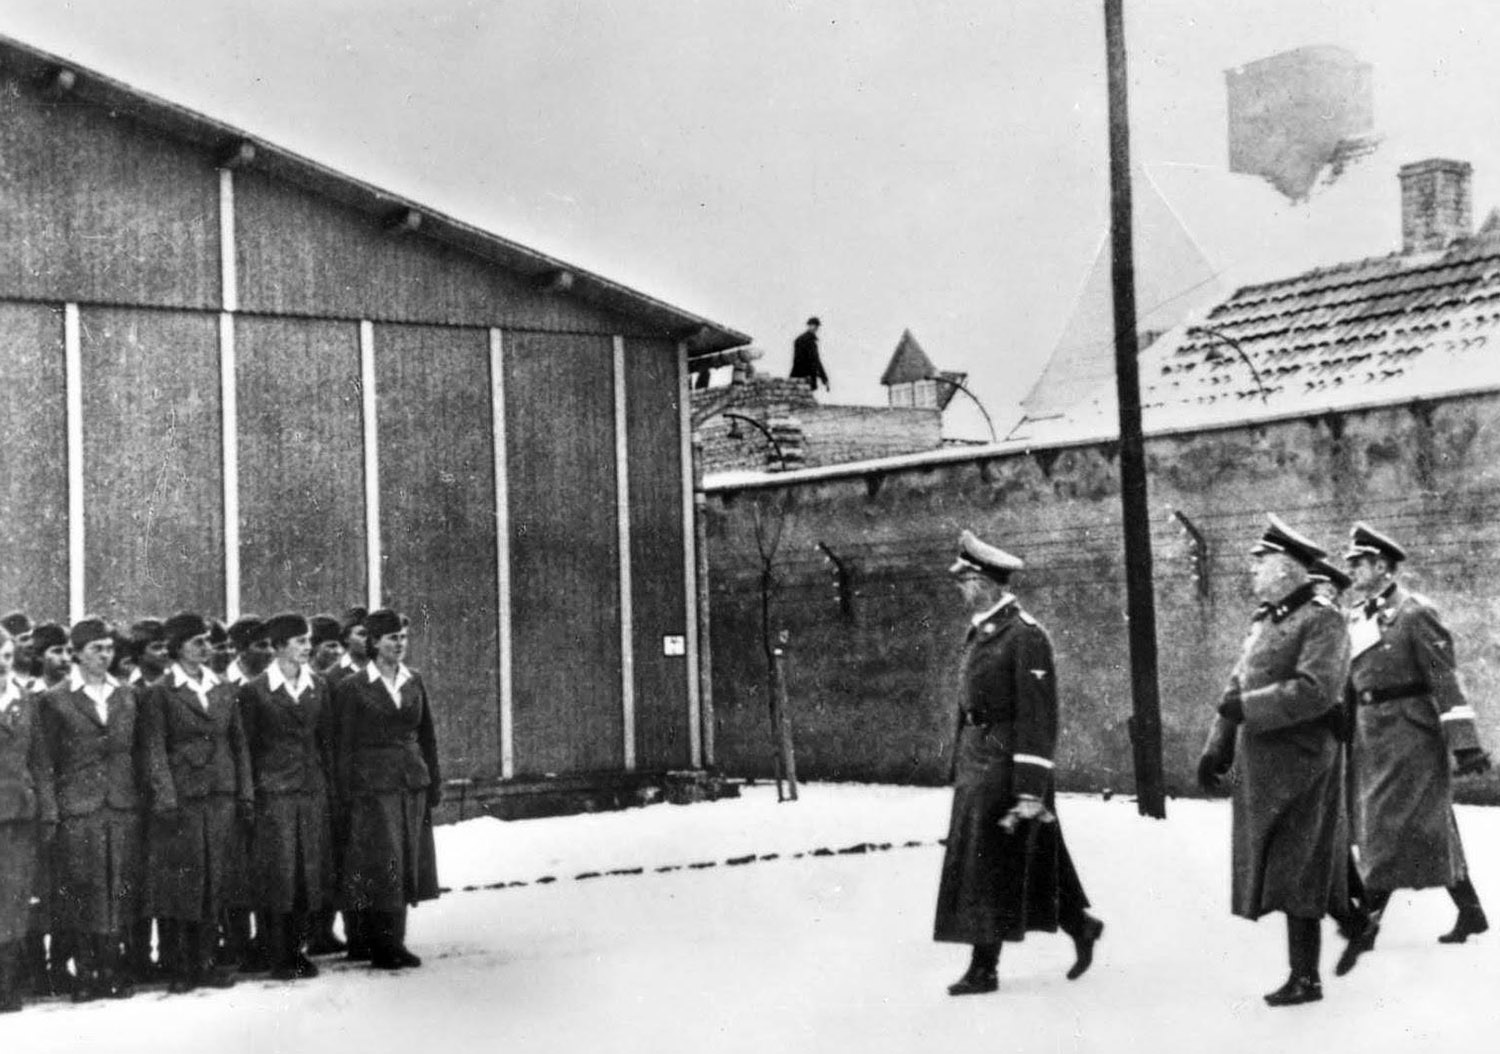 Female SS guards employed in concentration camps